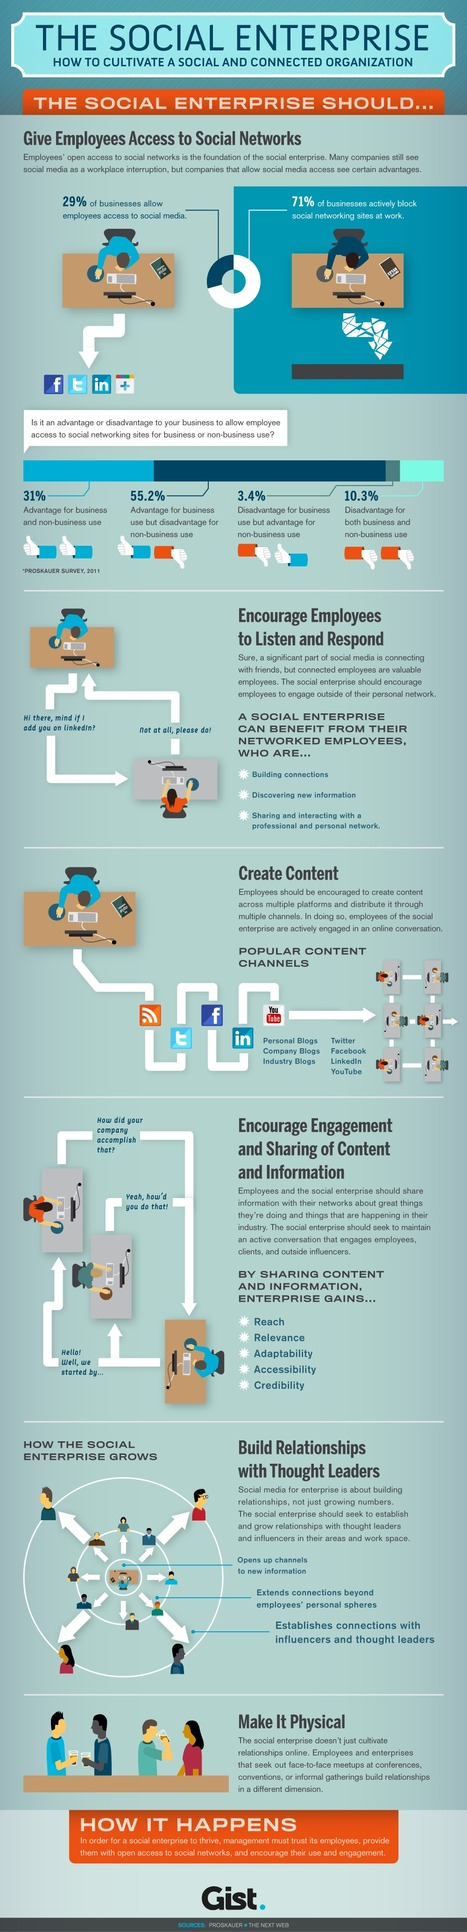 What Does the Social Enterprise Look Like? [infographic] | Social Business | Scoop.it